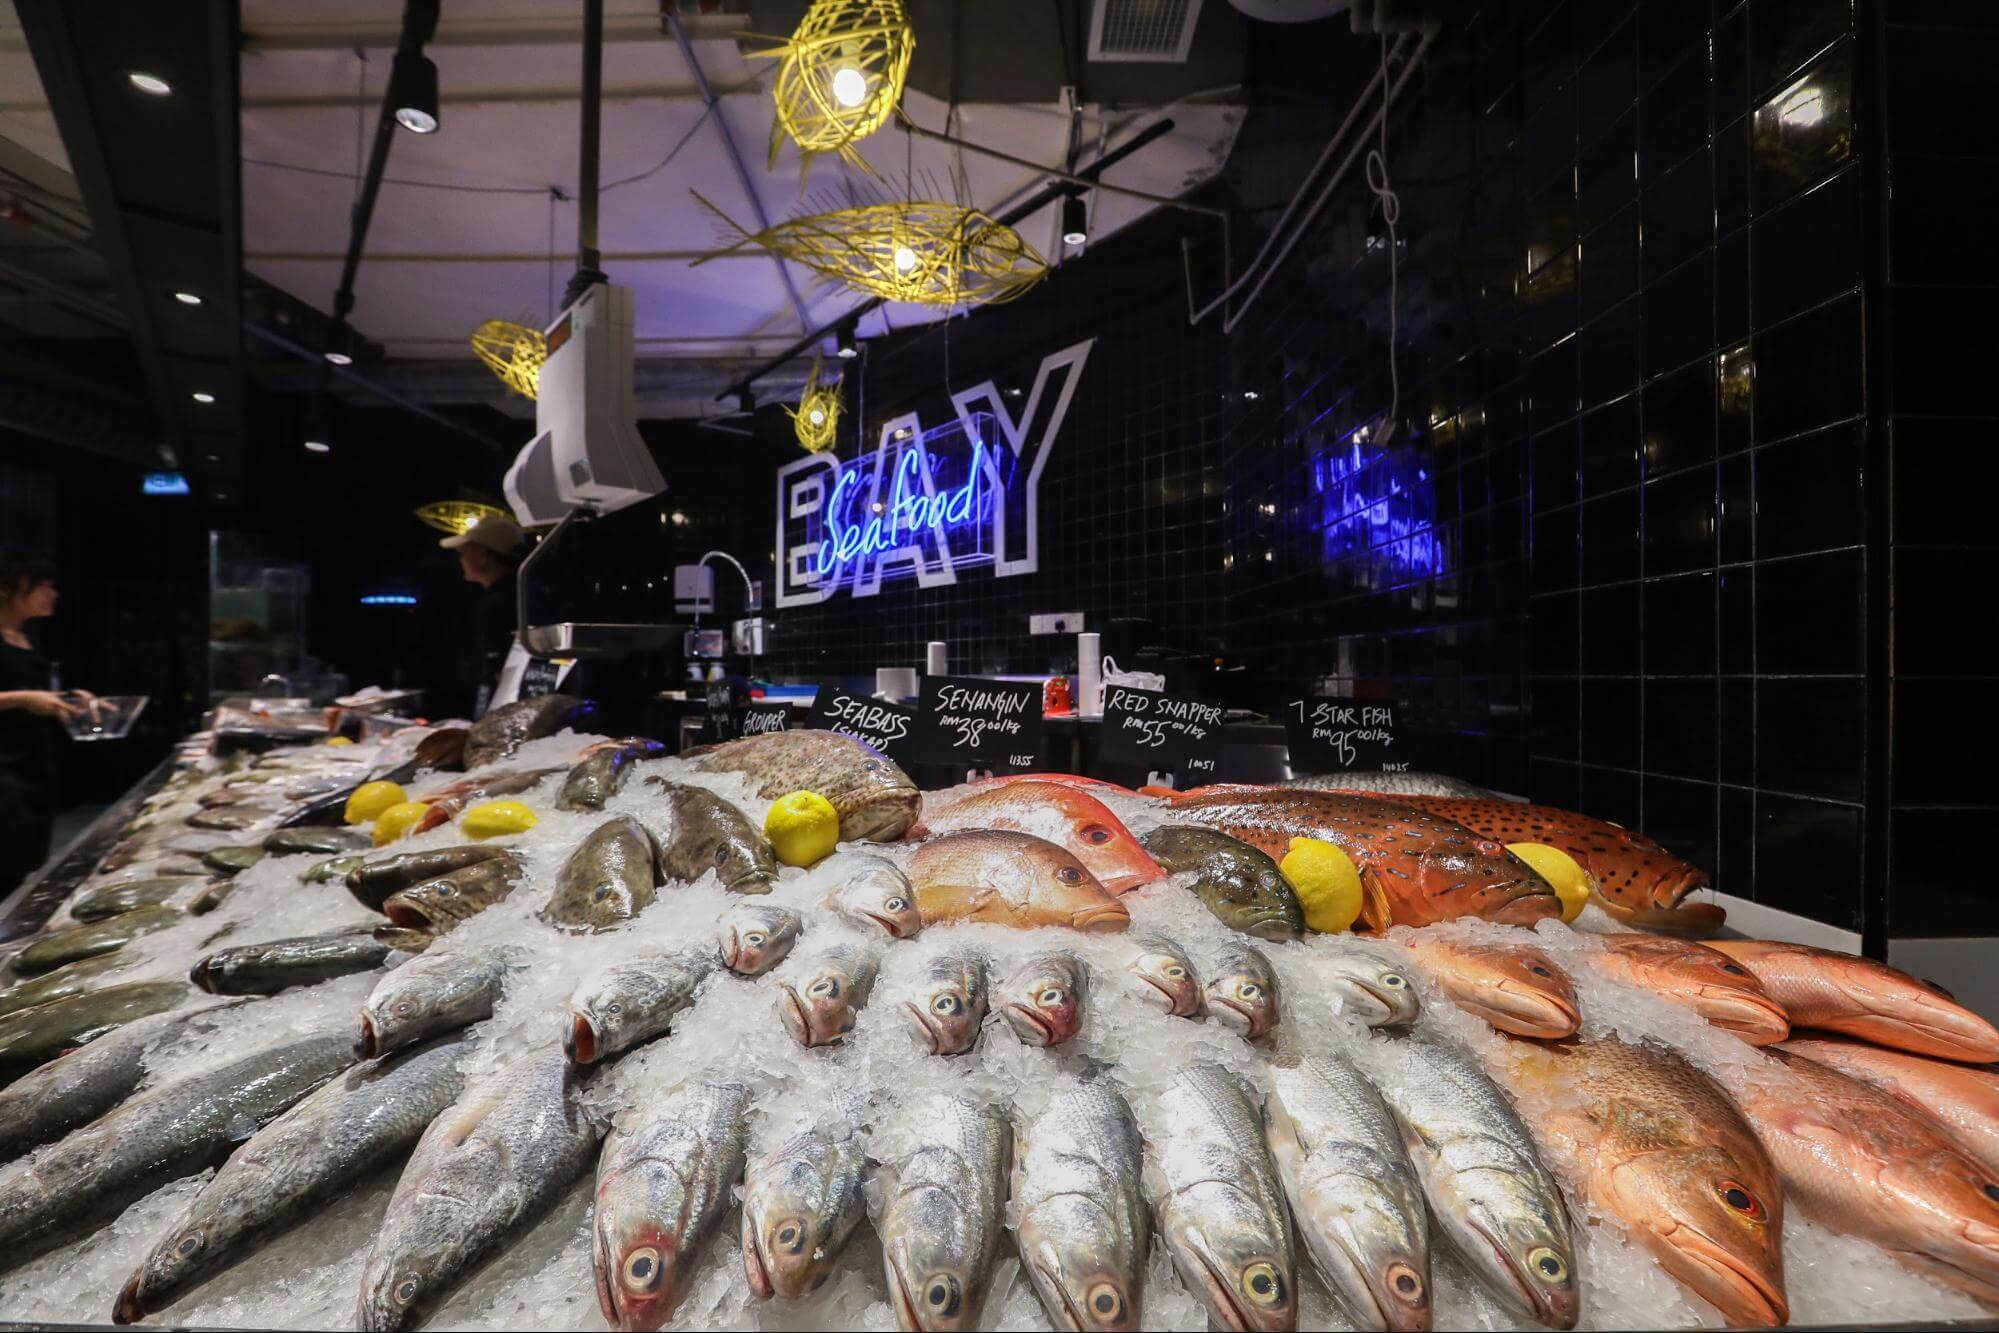 Ben's Independent Grocer seafood section